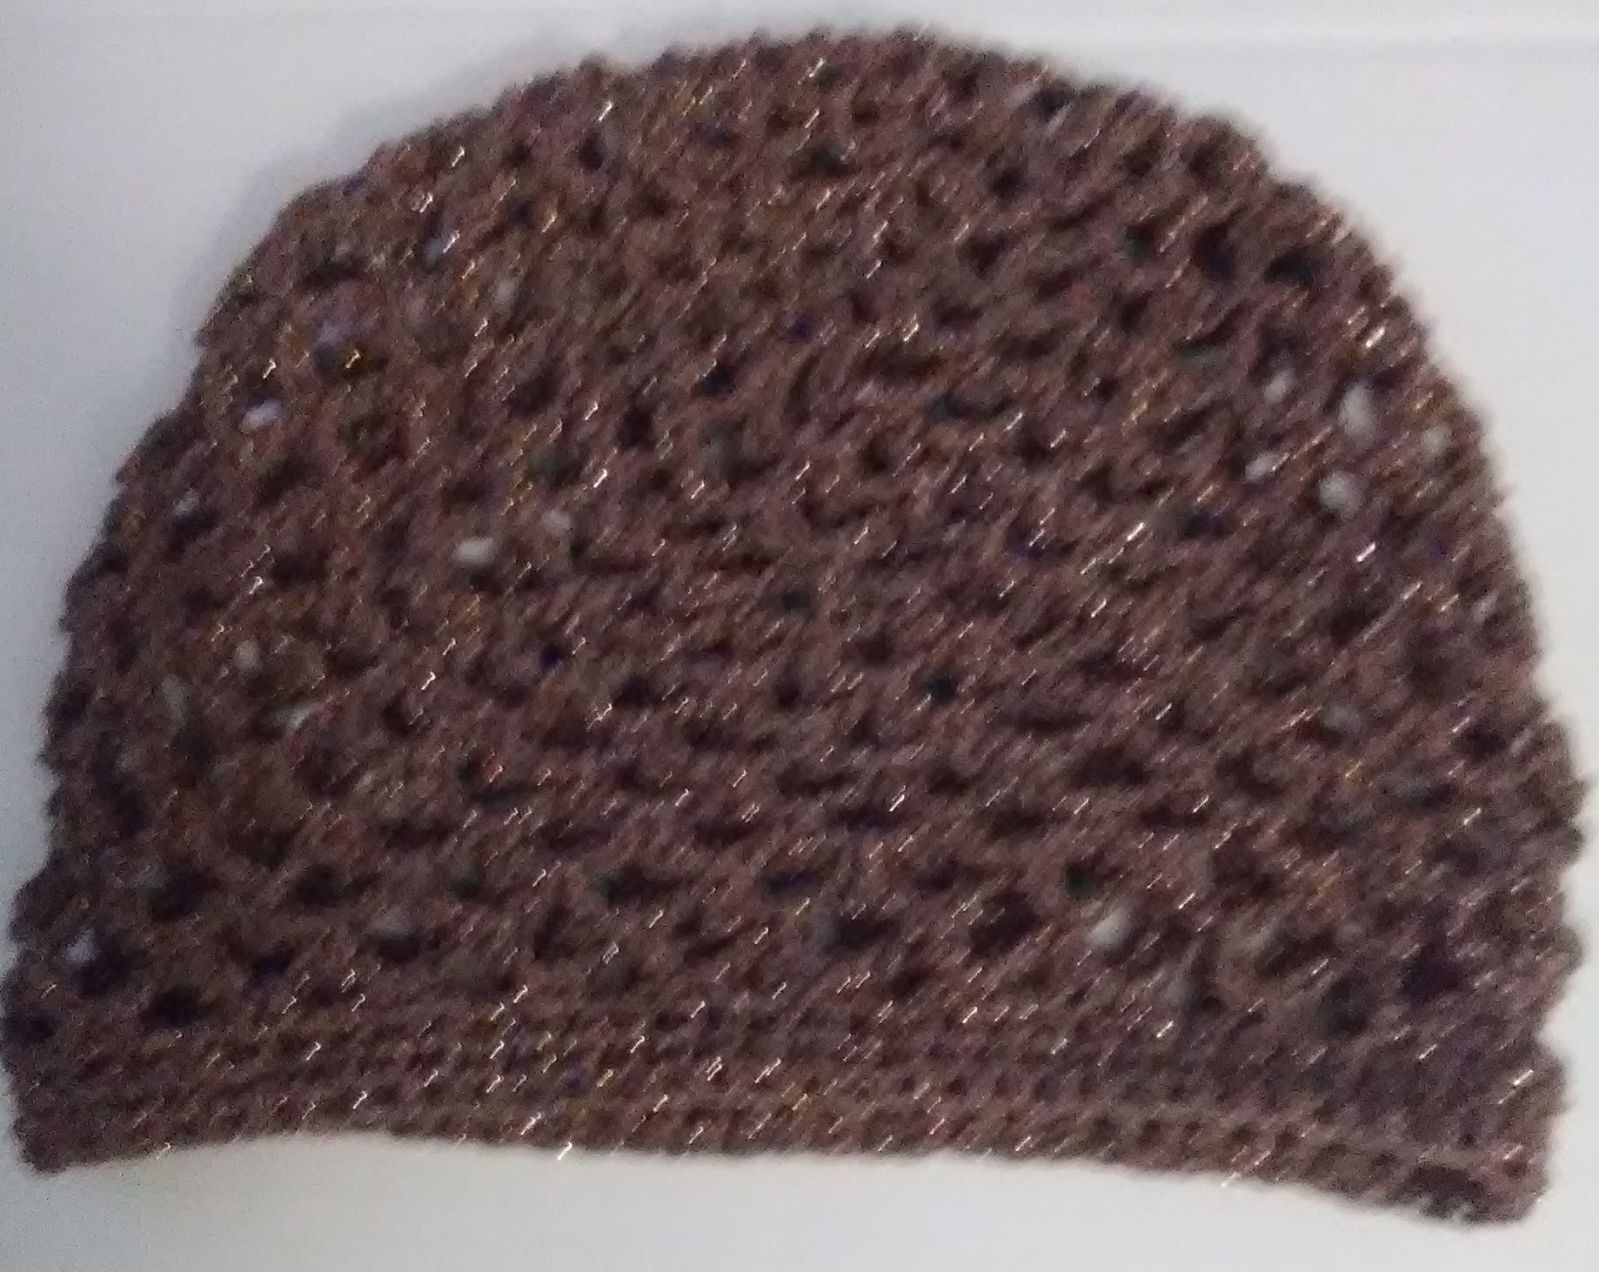 Cafe brown juliette cap, mesh crochet